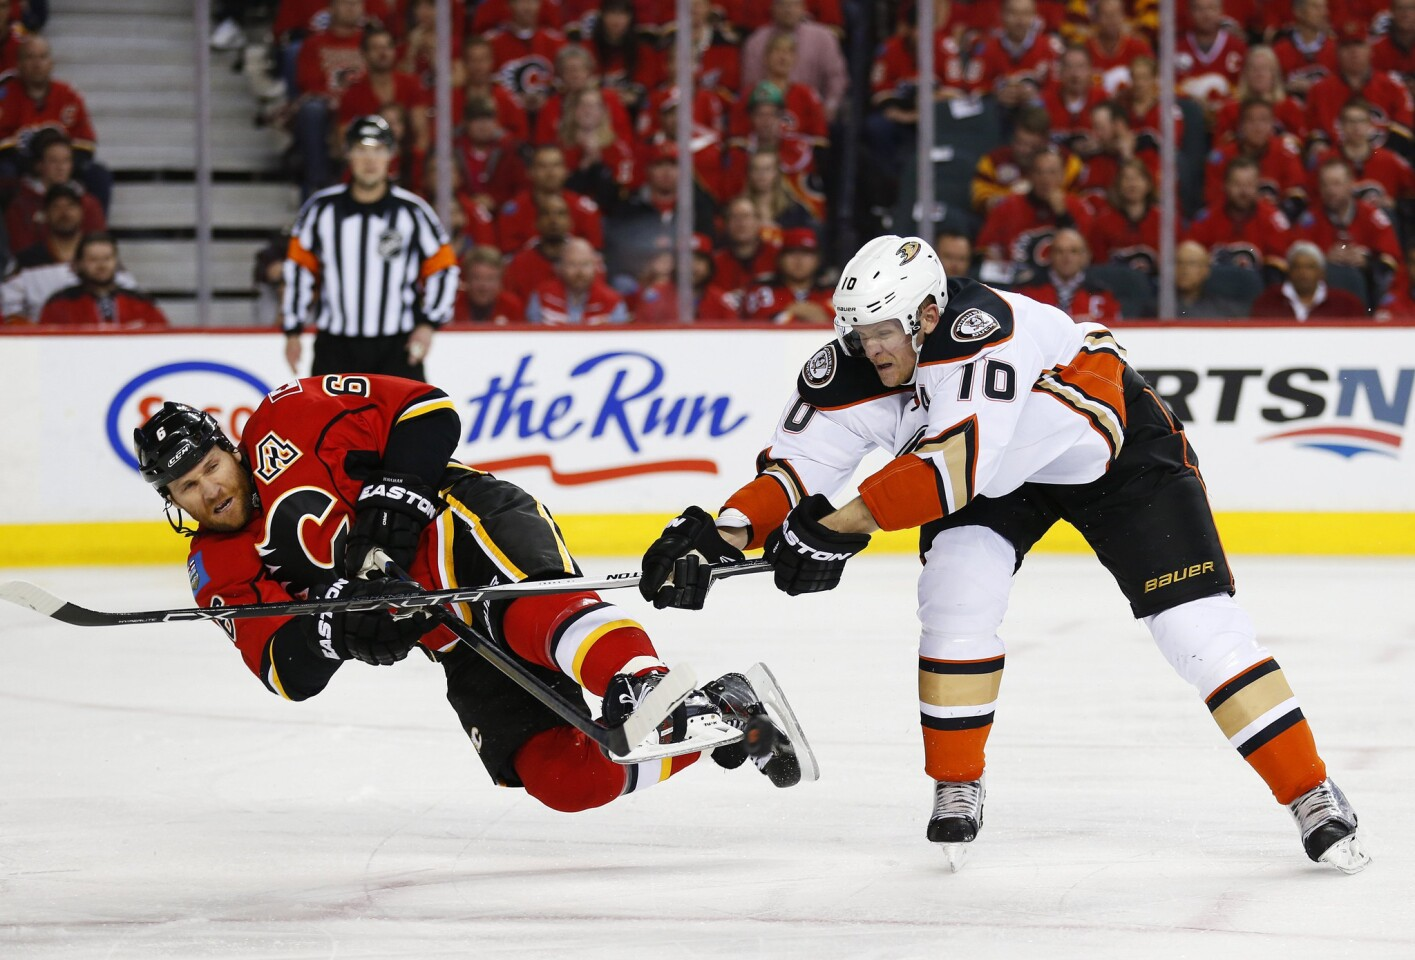 Calgary Flames' Dennis Wideman is sent flying by the Ducks' Corey Perry during Game 4 of their NHL playoff series Friday.